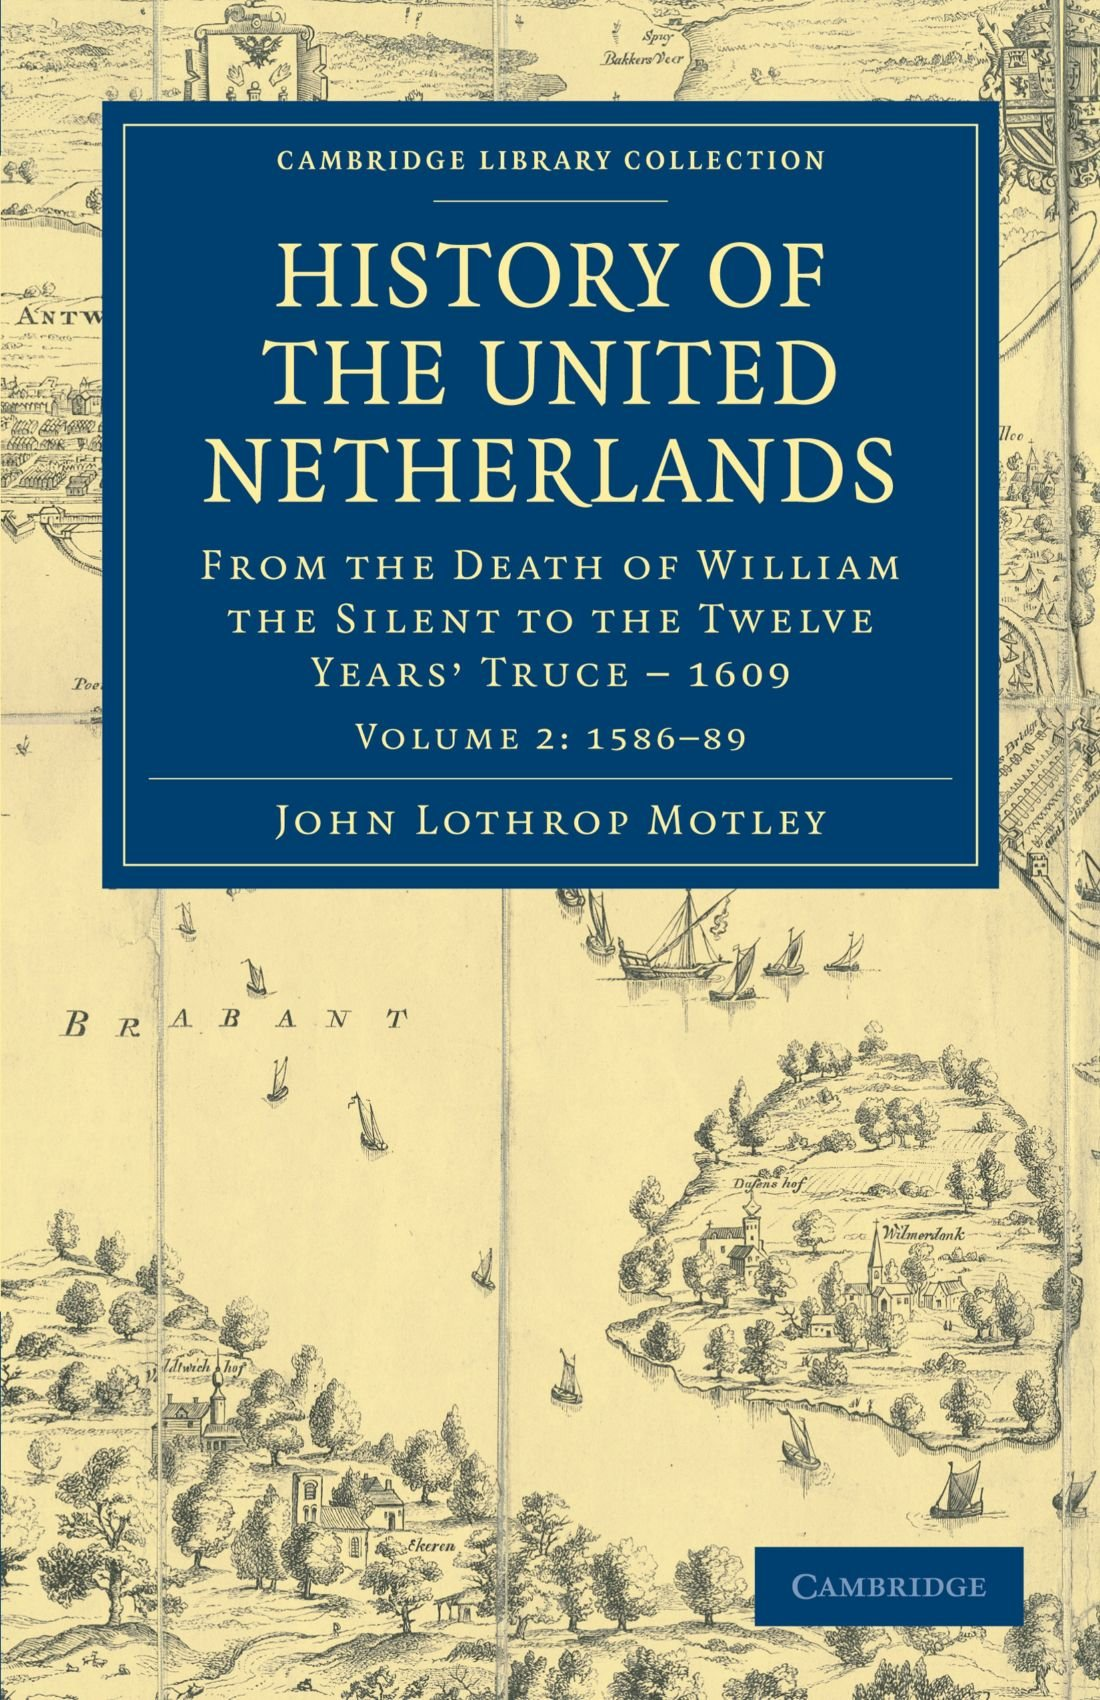 Download History of the United Netherlands: From the Death of William the Silent to the Twelve Years' Truce - 1609 (Cambridge Library Collection - European History) PDF